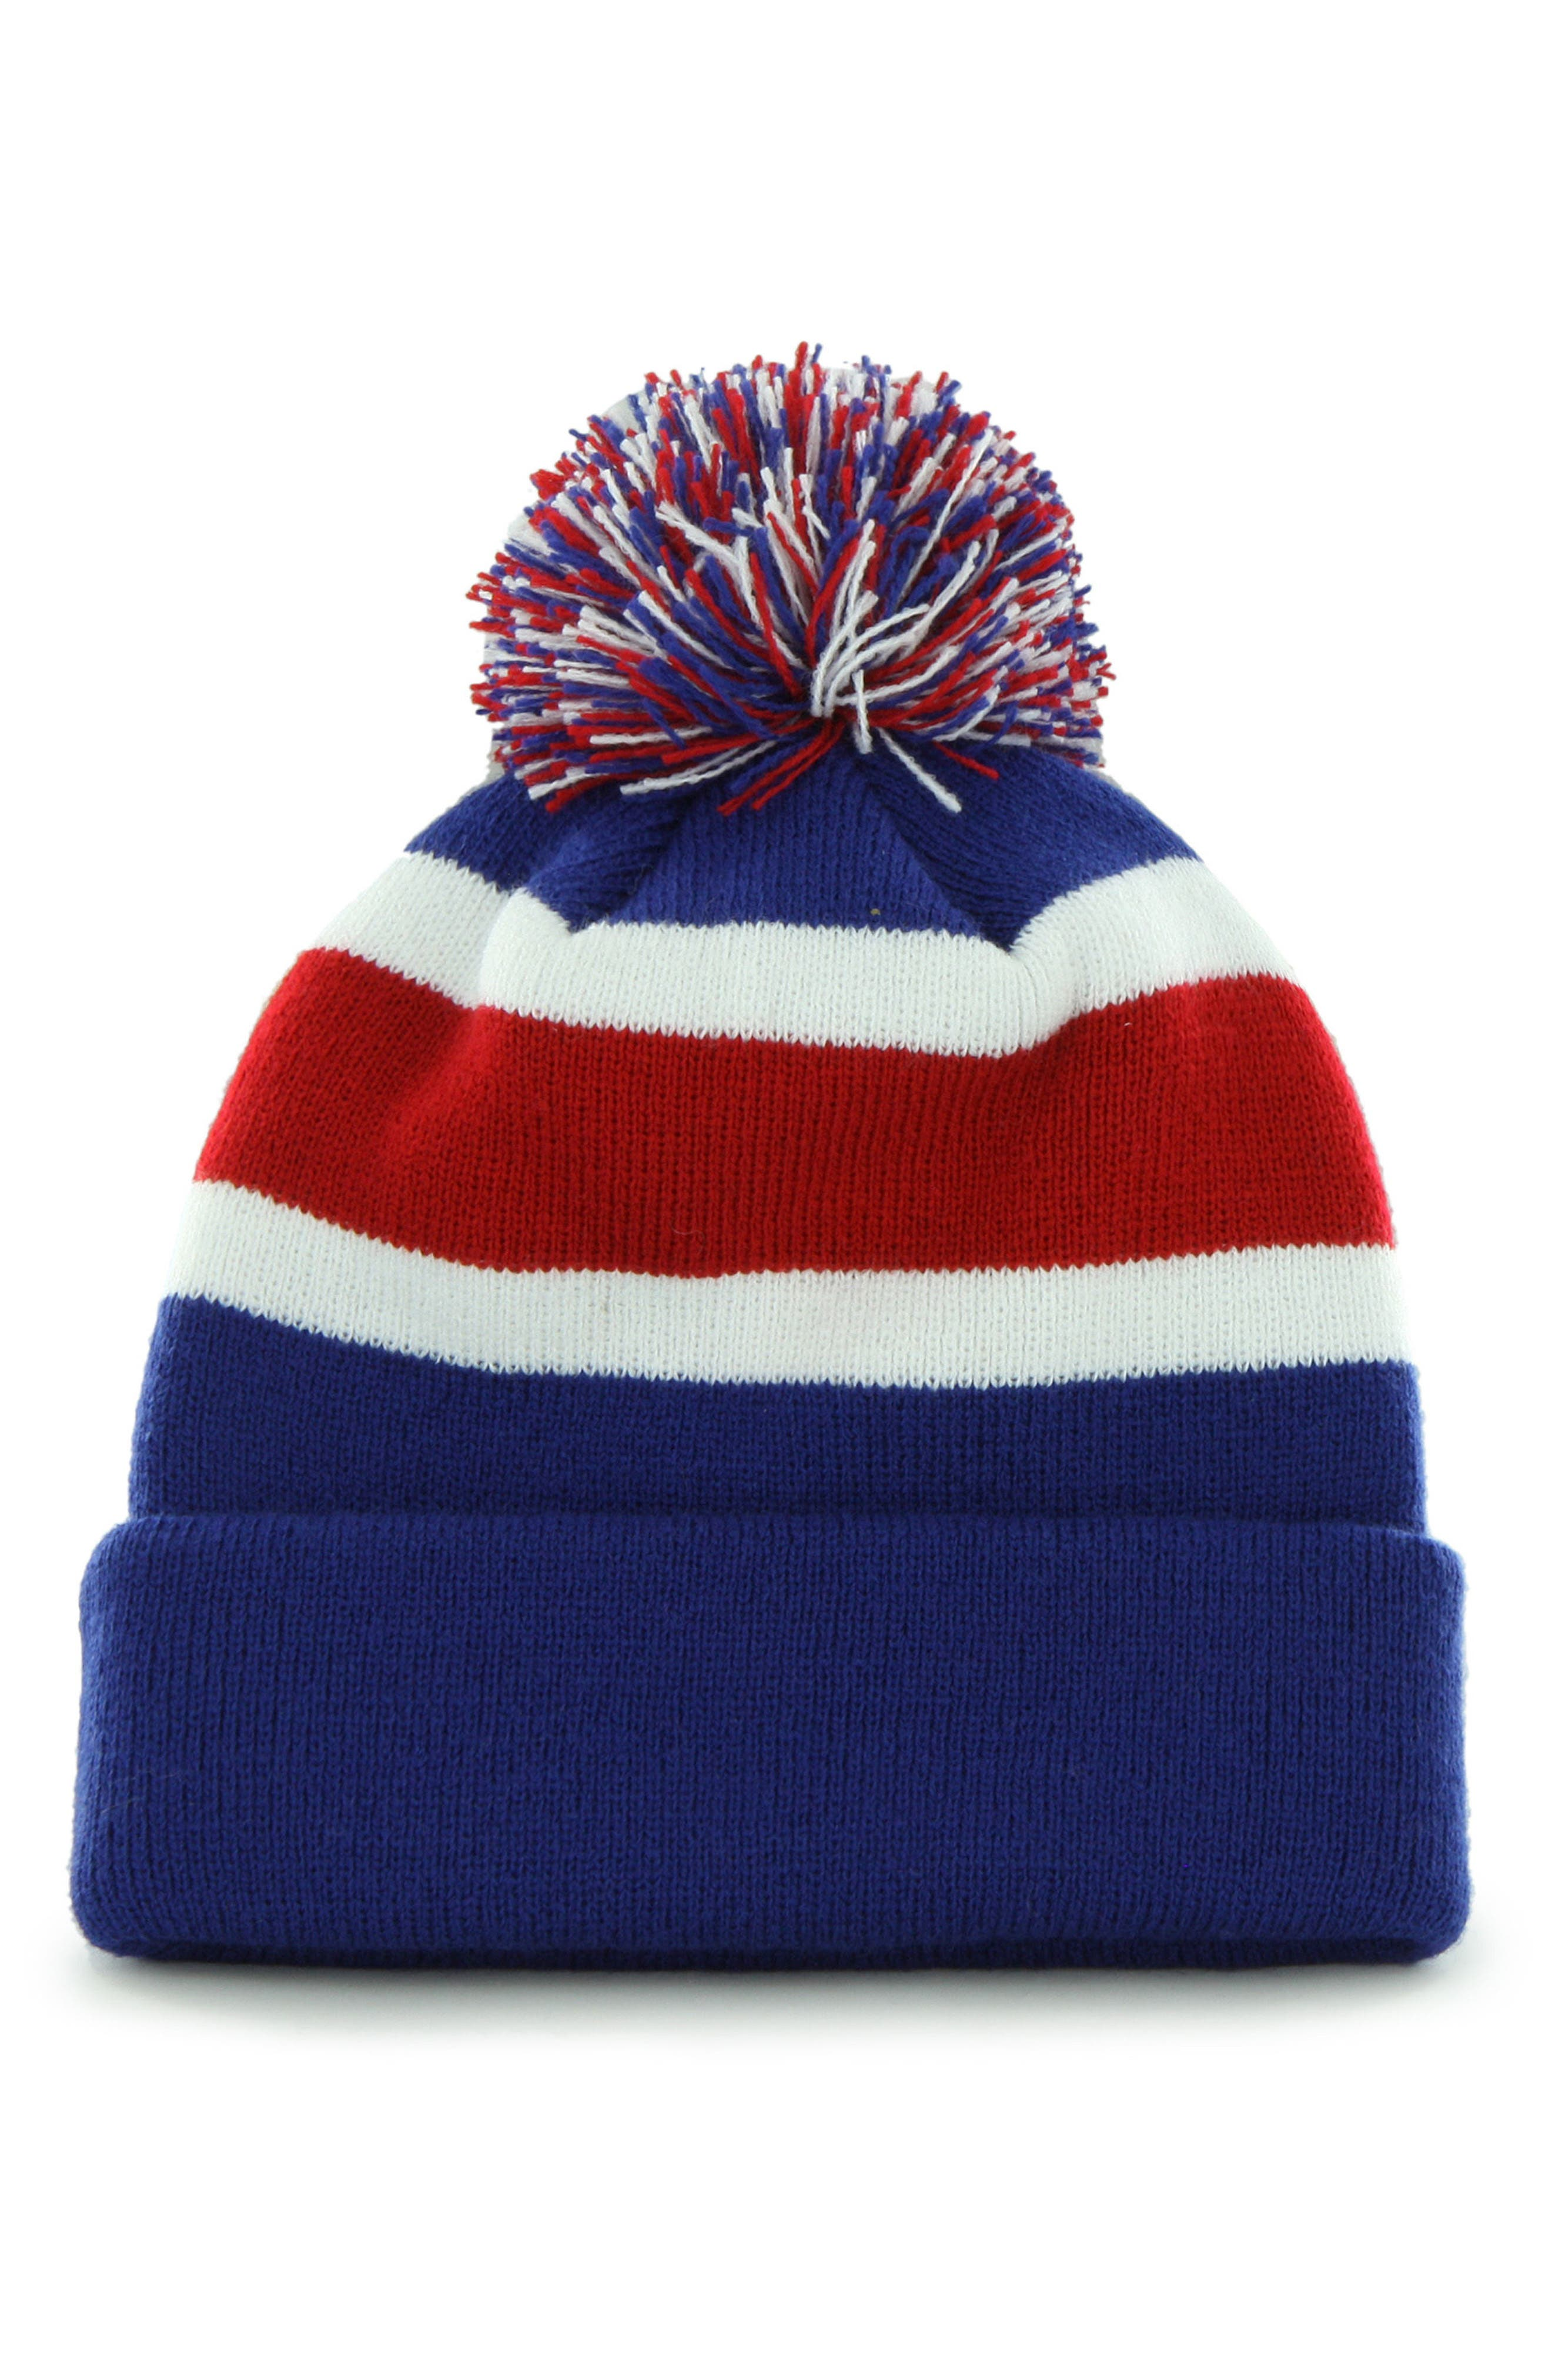 NFL Breakaway Knit Cap,                             Alternate thumbnail 9, color,